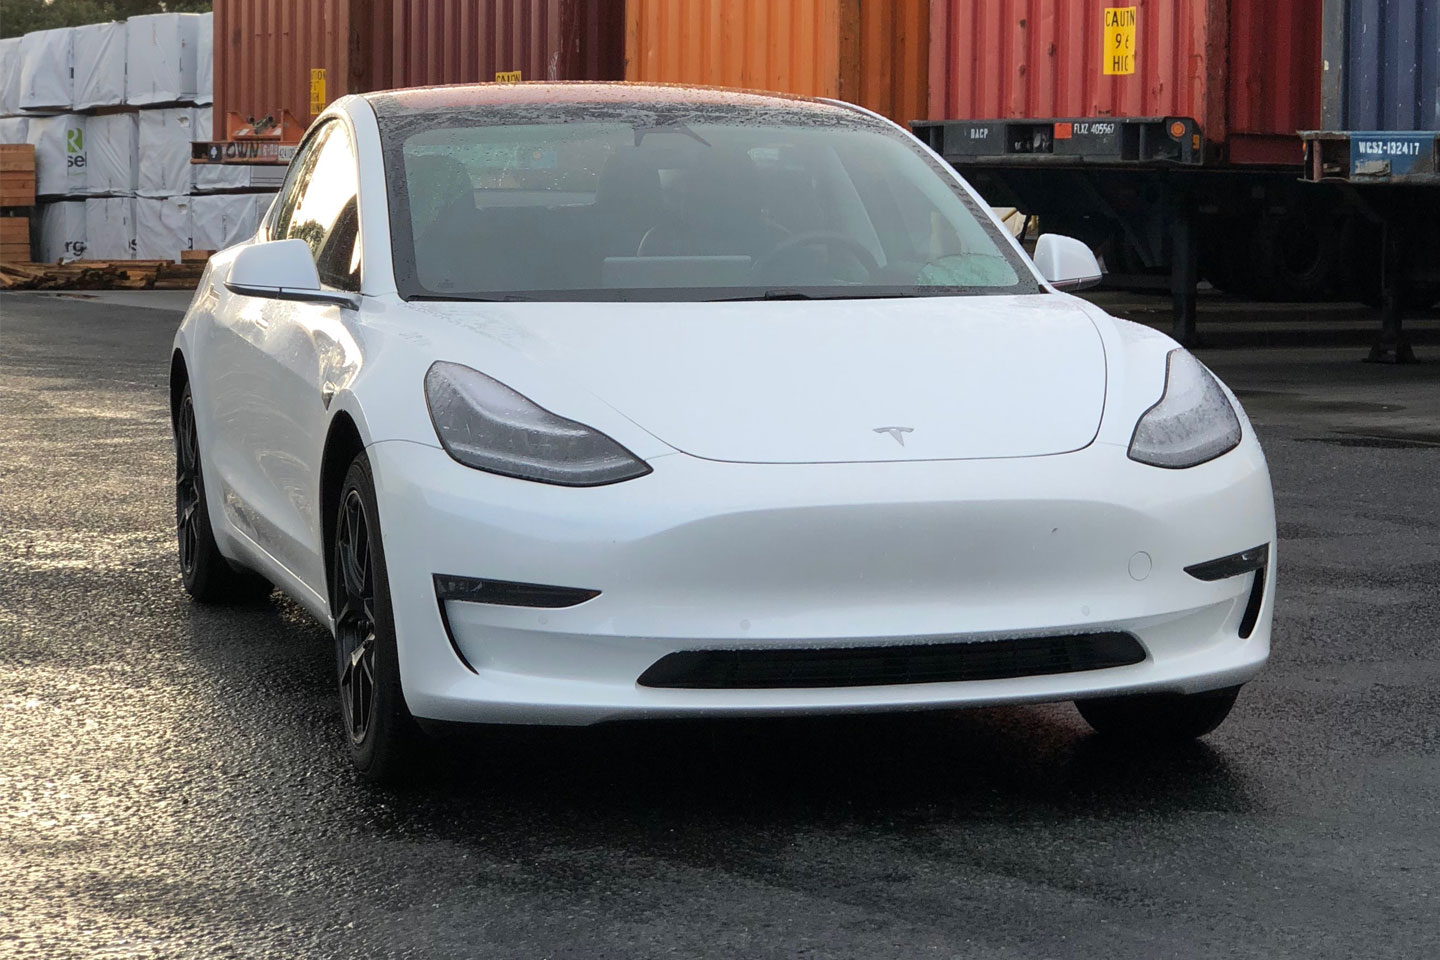 https://cdn2.hubspot.net/hubfs/347760/tesla-model-3-1.jpg